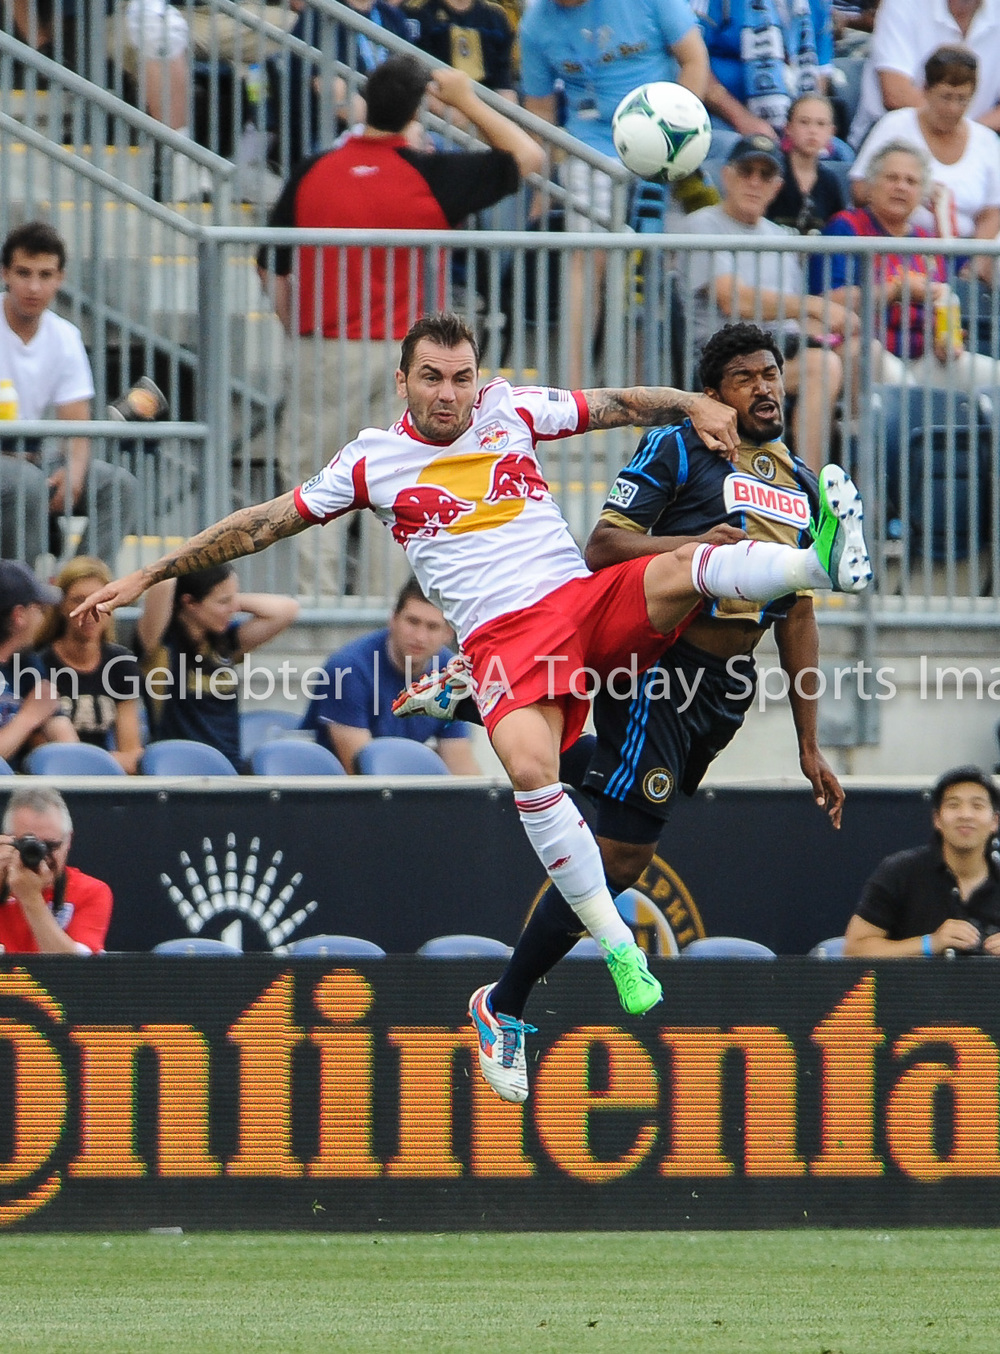 Redbulls_Union_June_23_2013_JAG0187.jpg